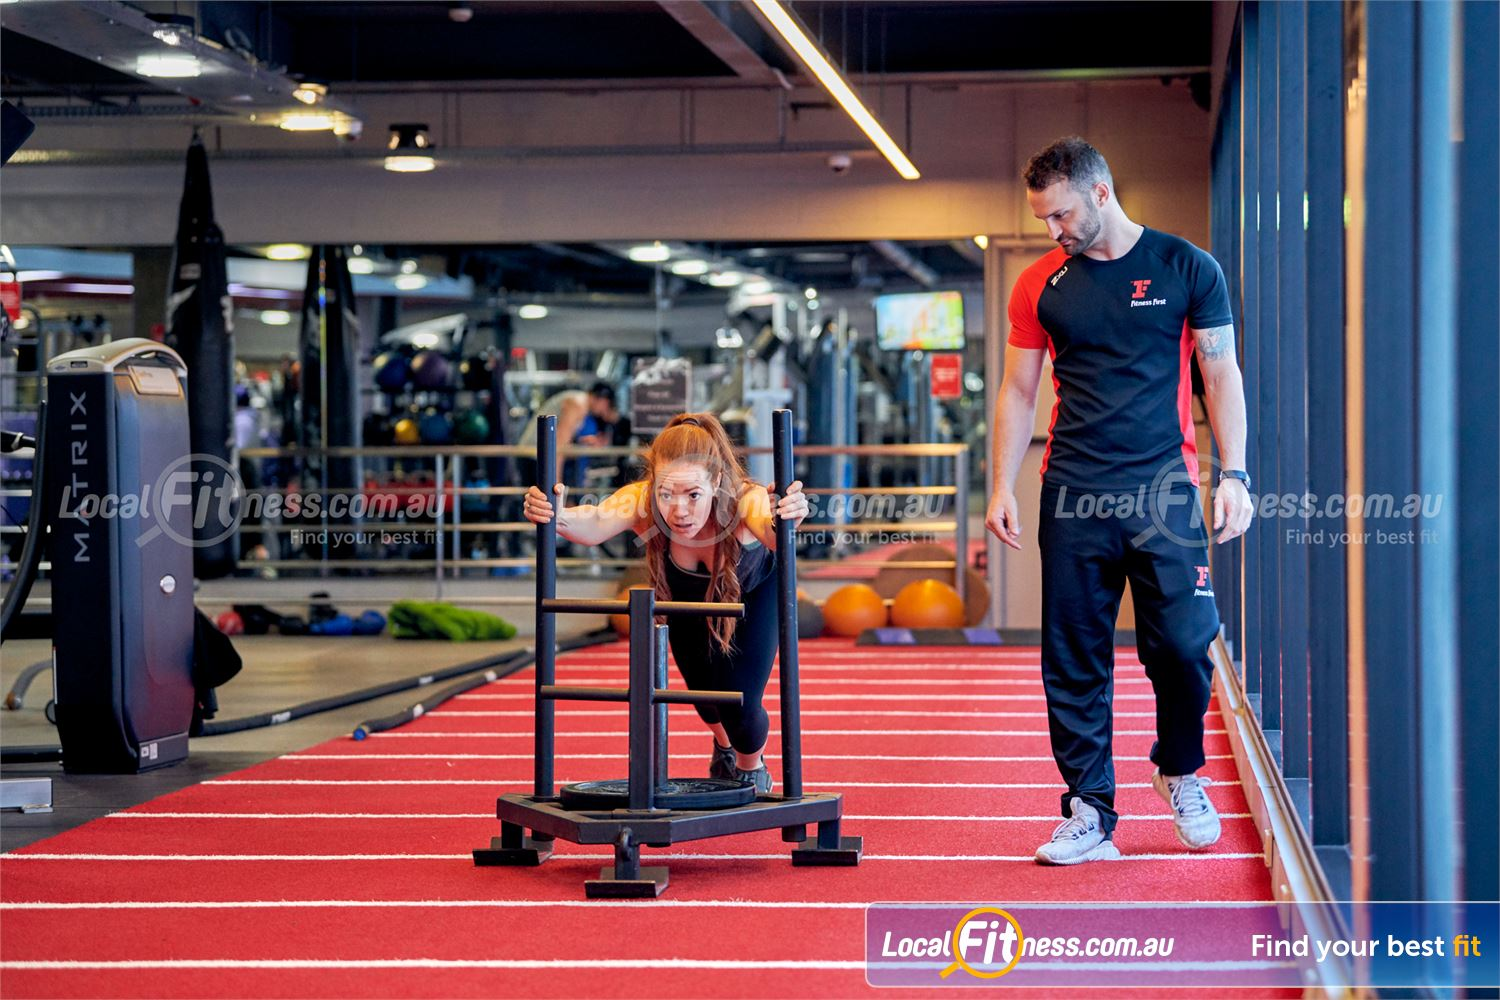 Fitness First Macquarie Ryde Welcome to the innovative Fitness First Macquarie gym.